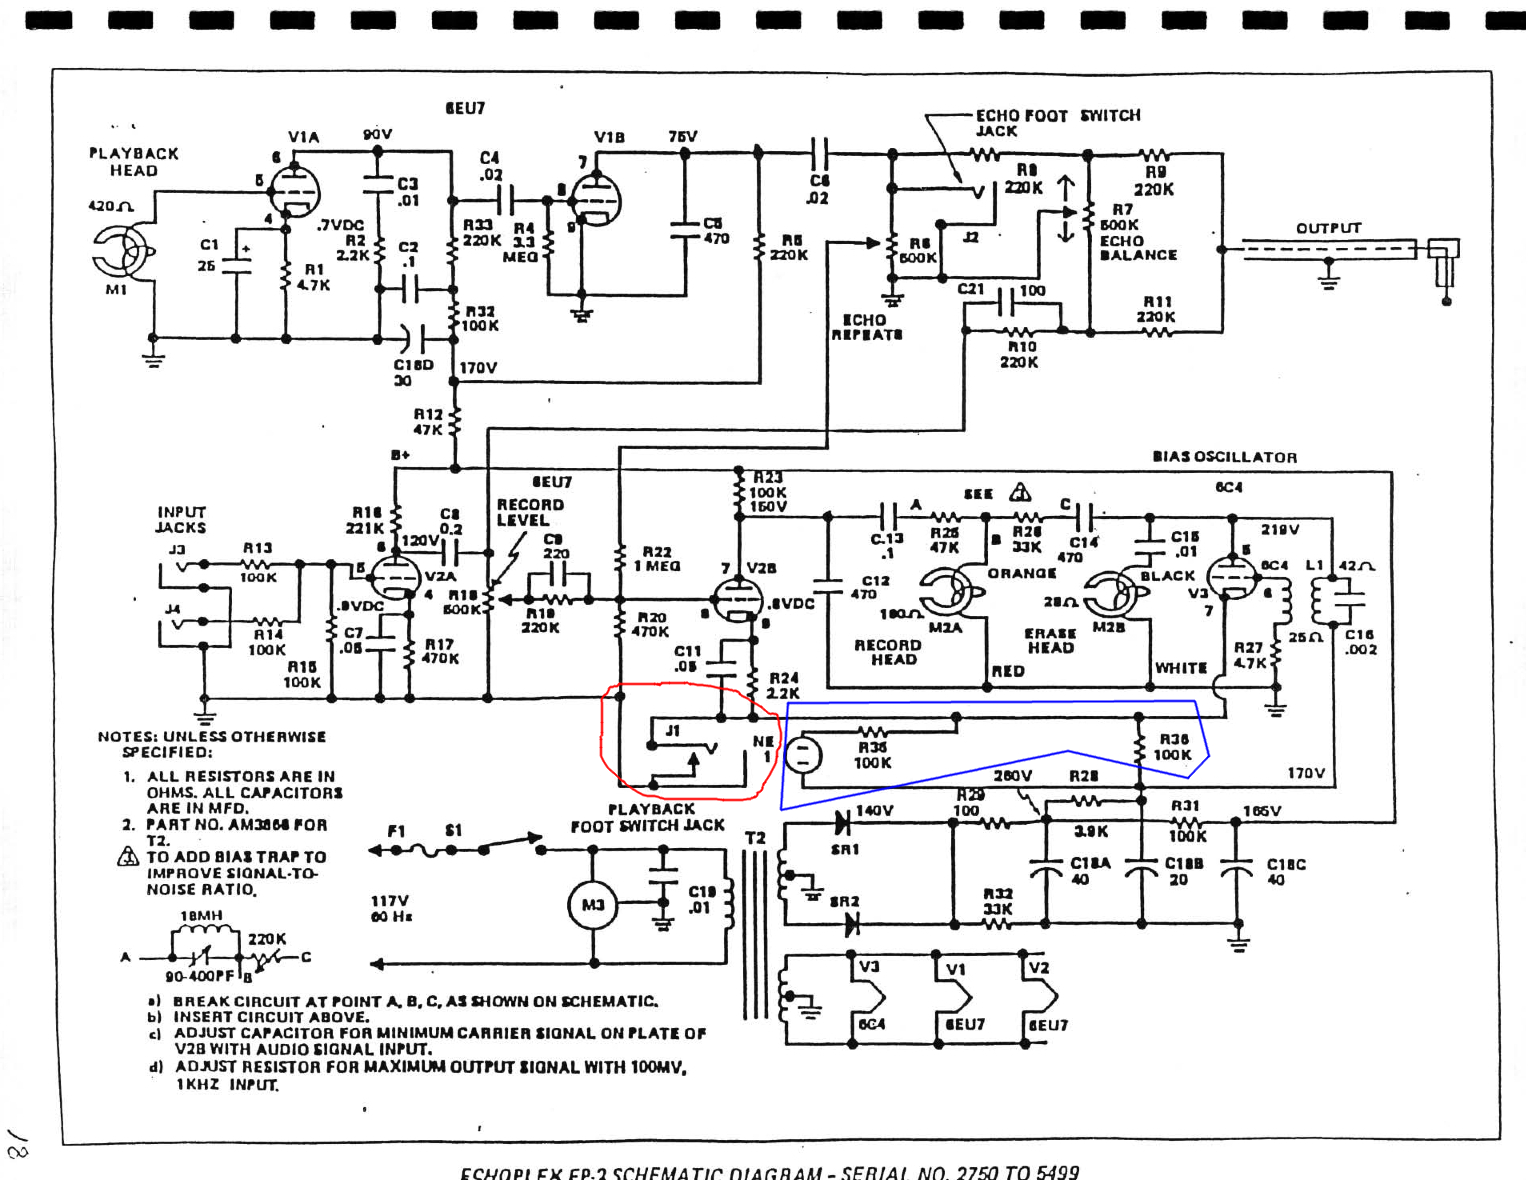 Echoplex Build Thread Picture Of Building The Oscillator Circuits This May Be Irrelevant Since Im Using A Different Bias Circuit But Trying To Understand Whats Going On In Original Schematic Before I